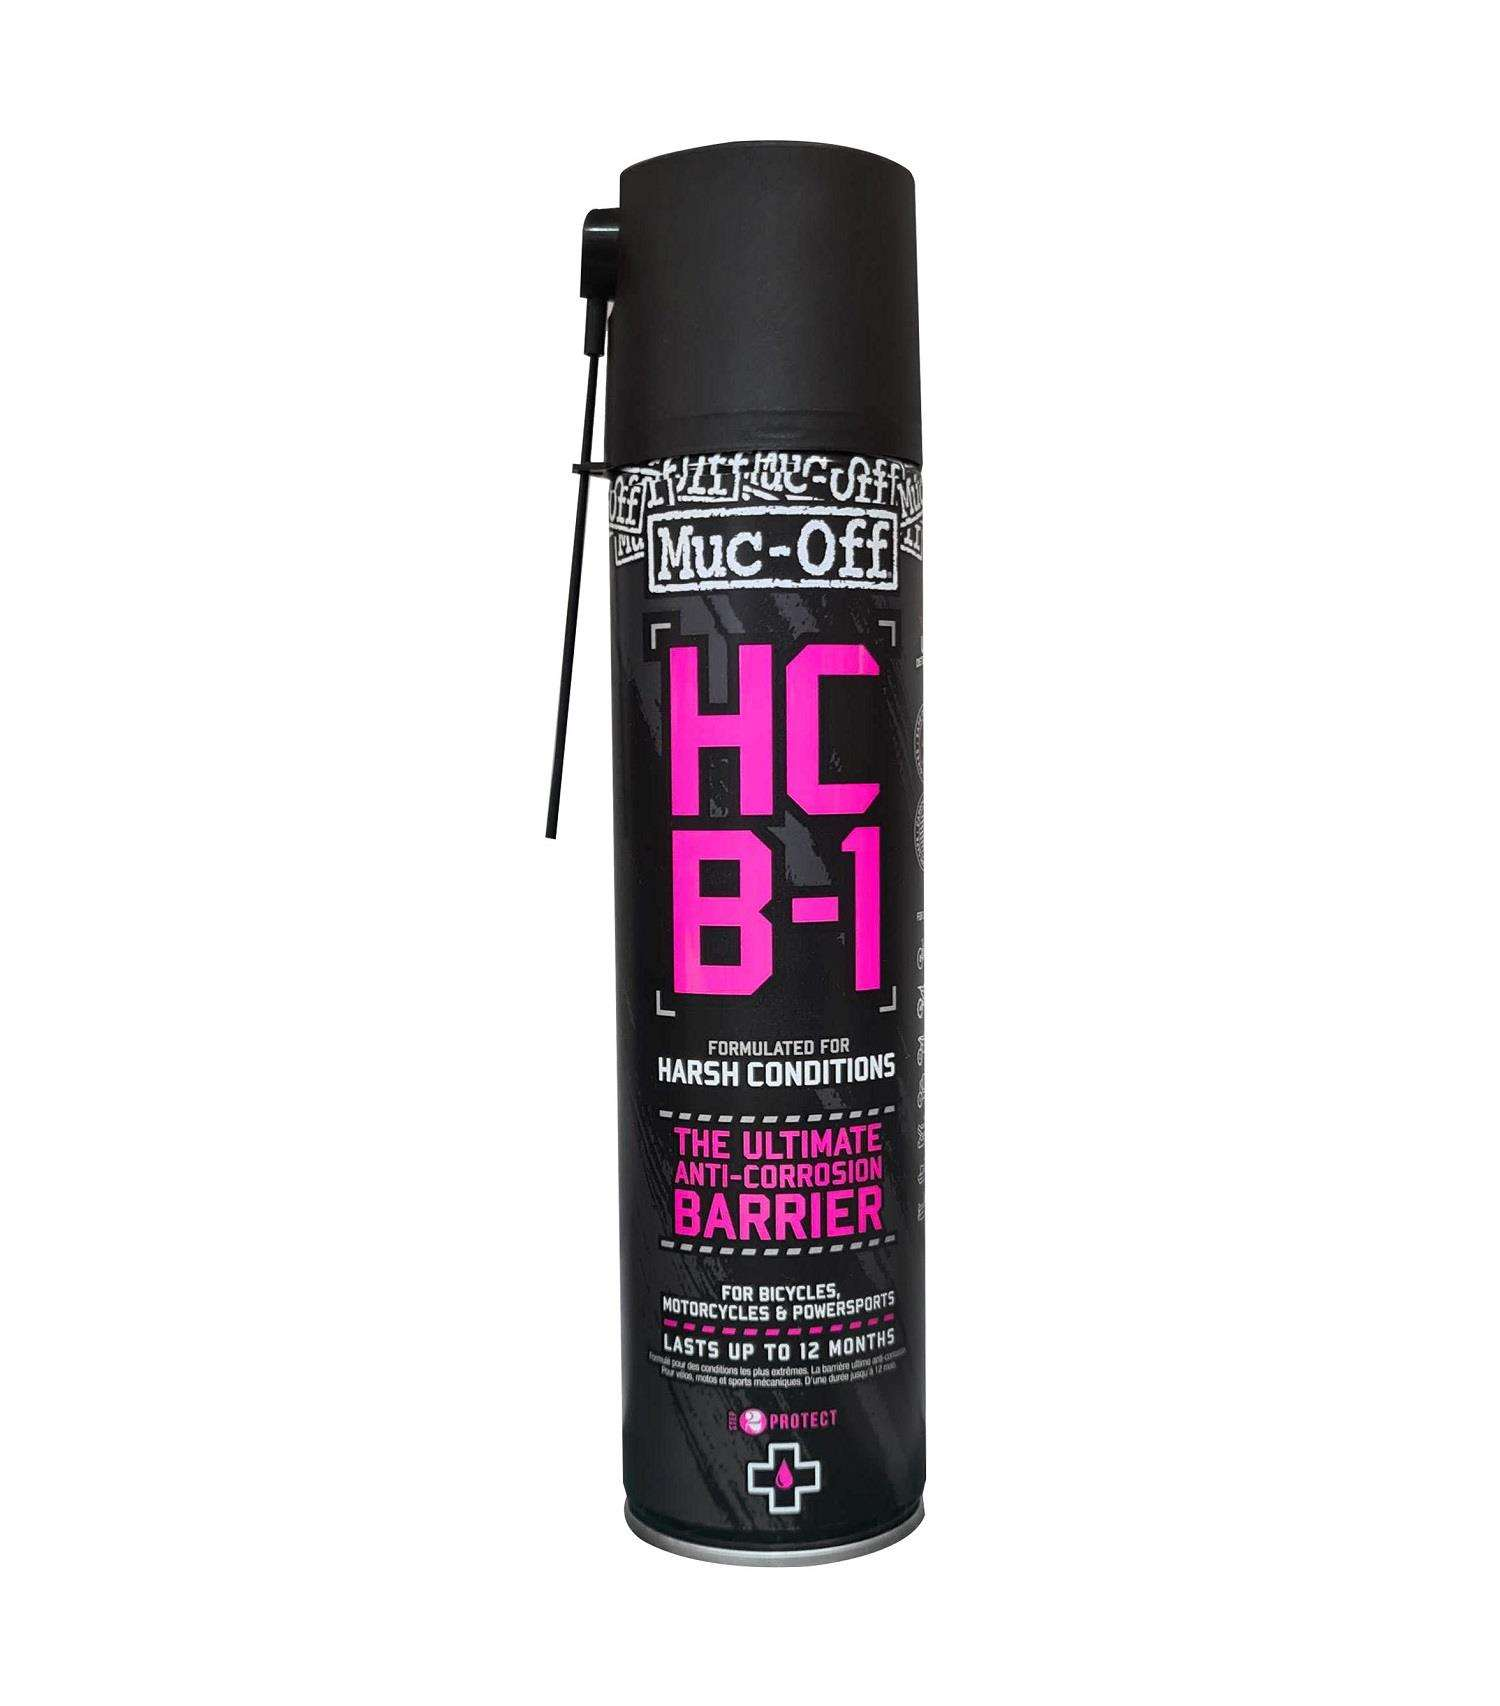 Muc-Off HCB-1 <br />Harsh Conditions Barrier